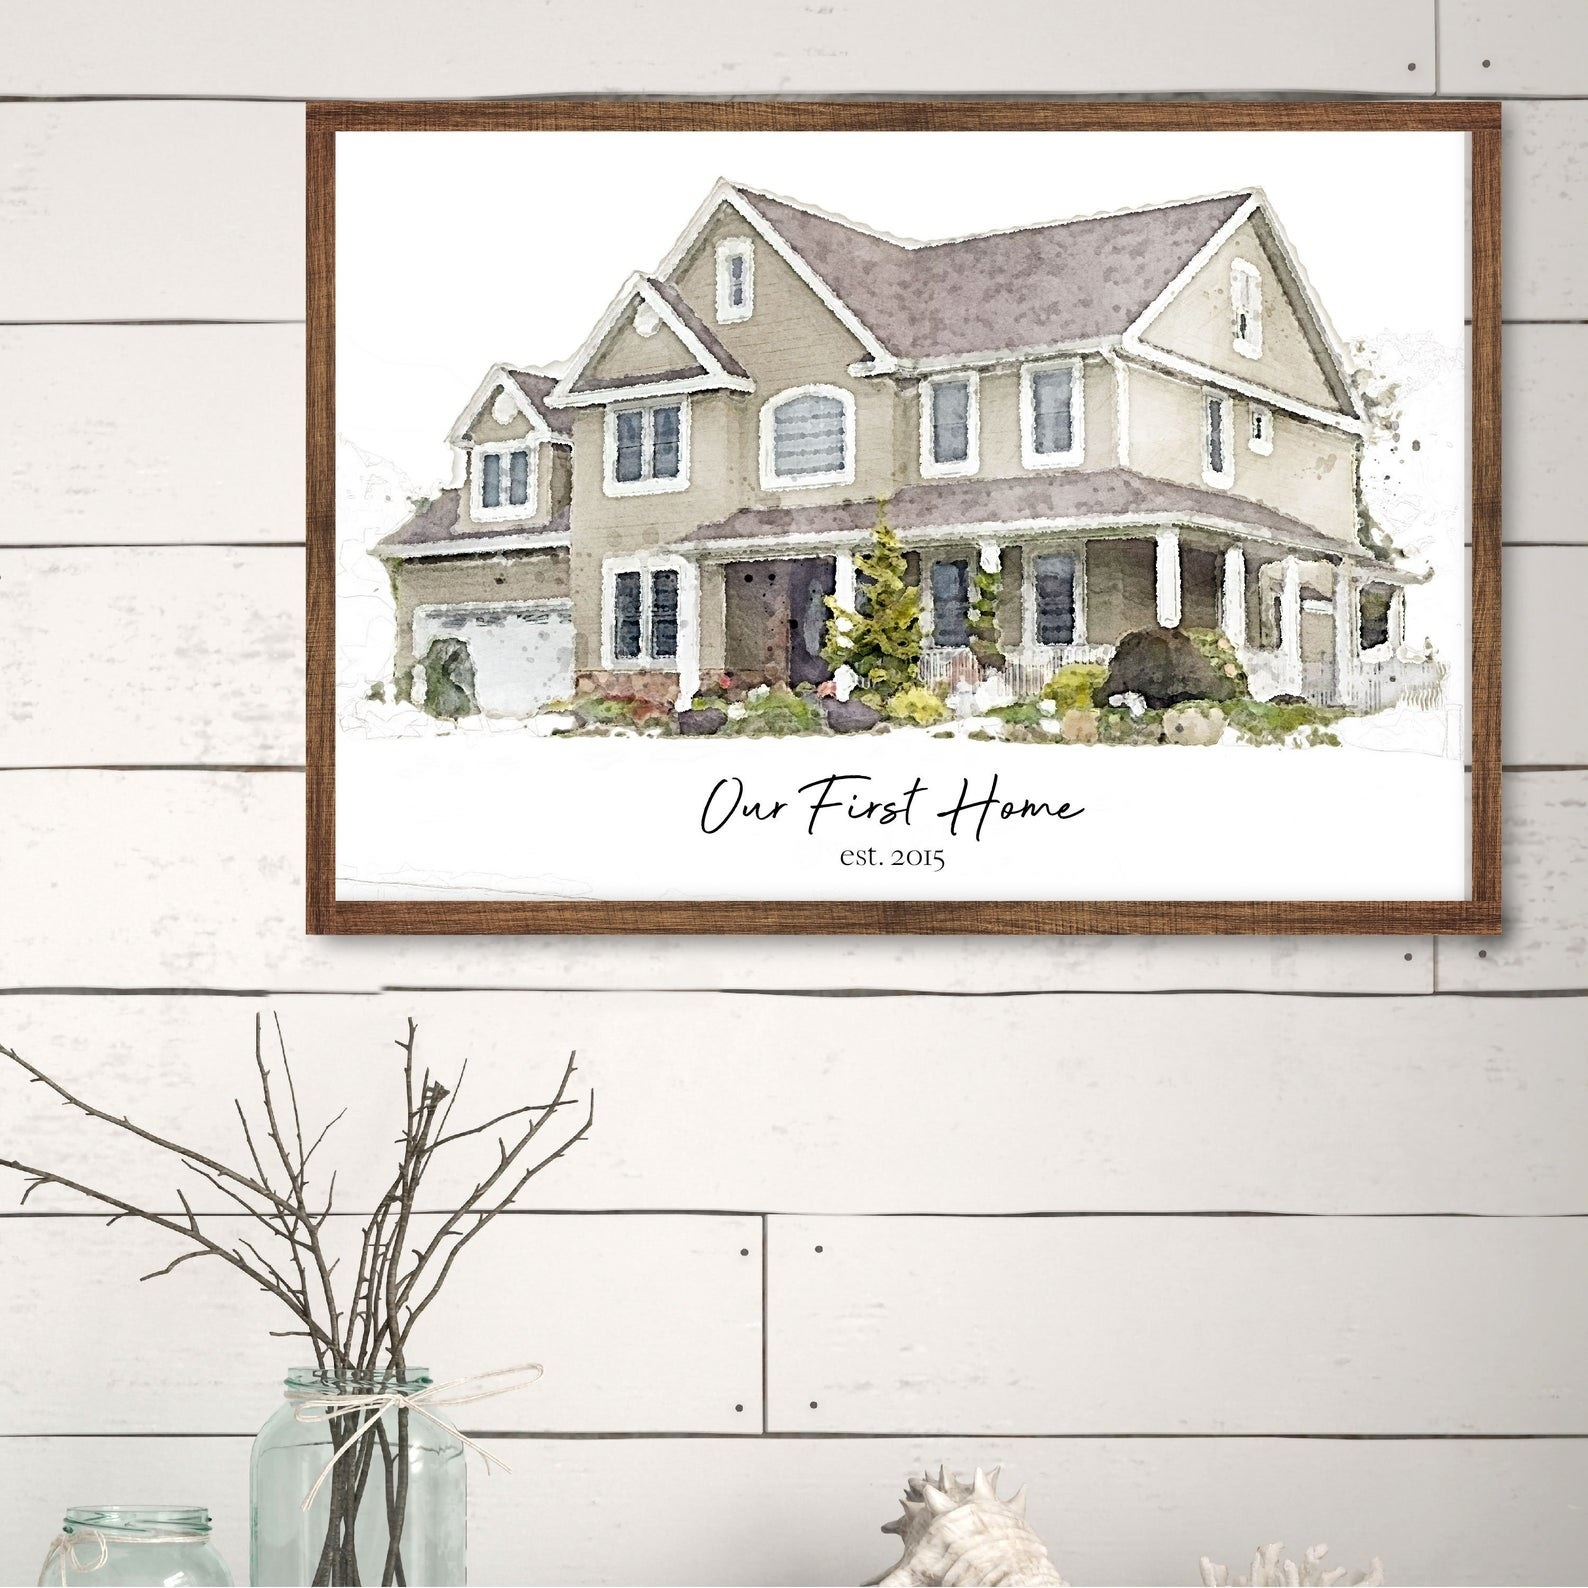 a watercolor depiction of a house in a frame